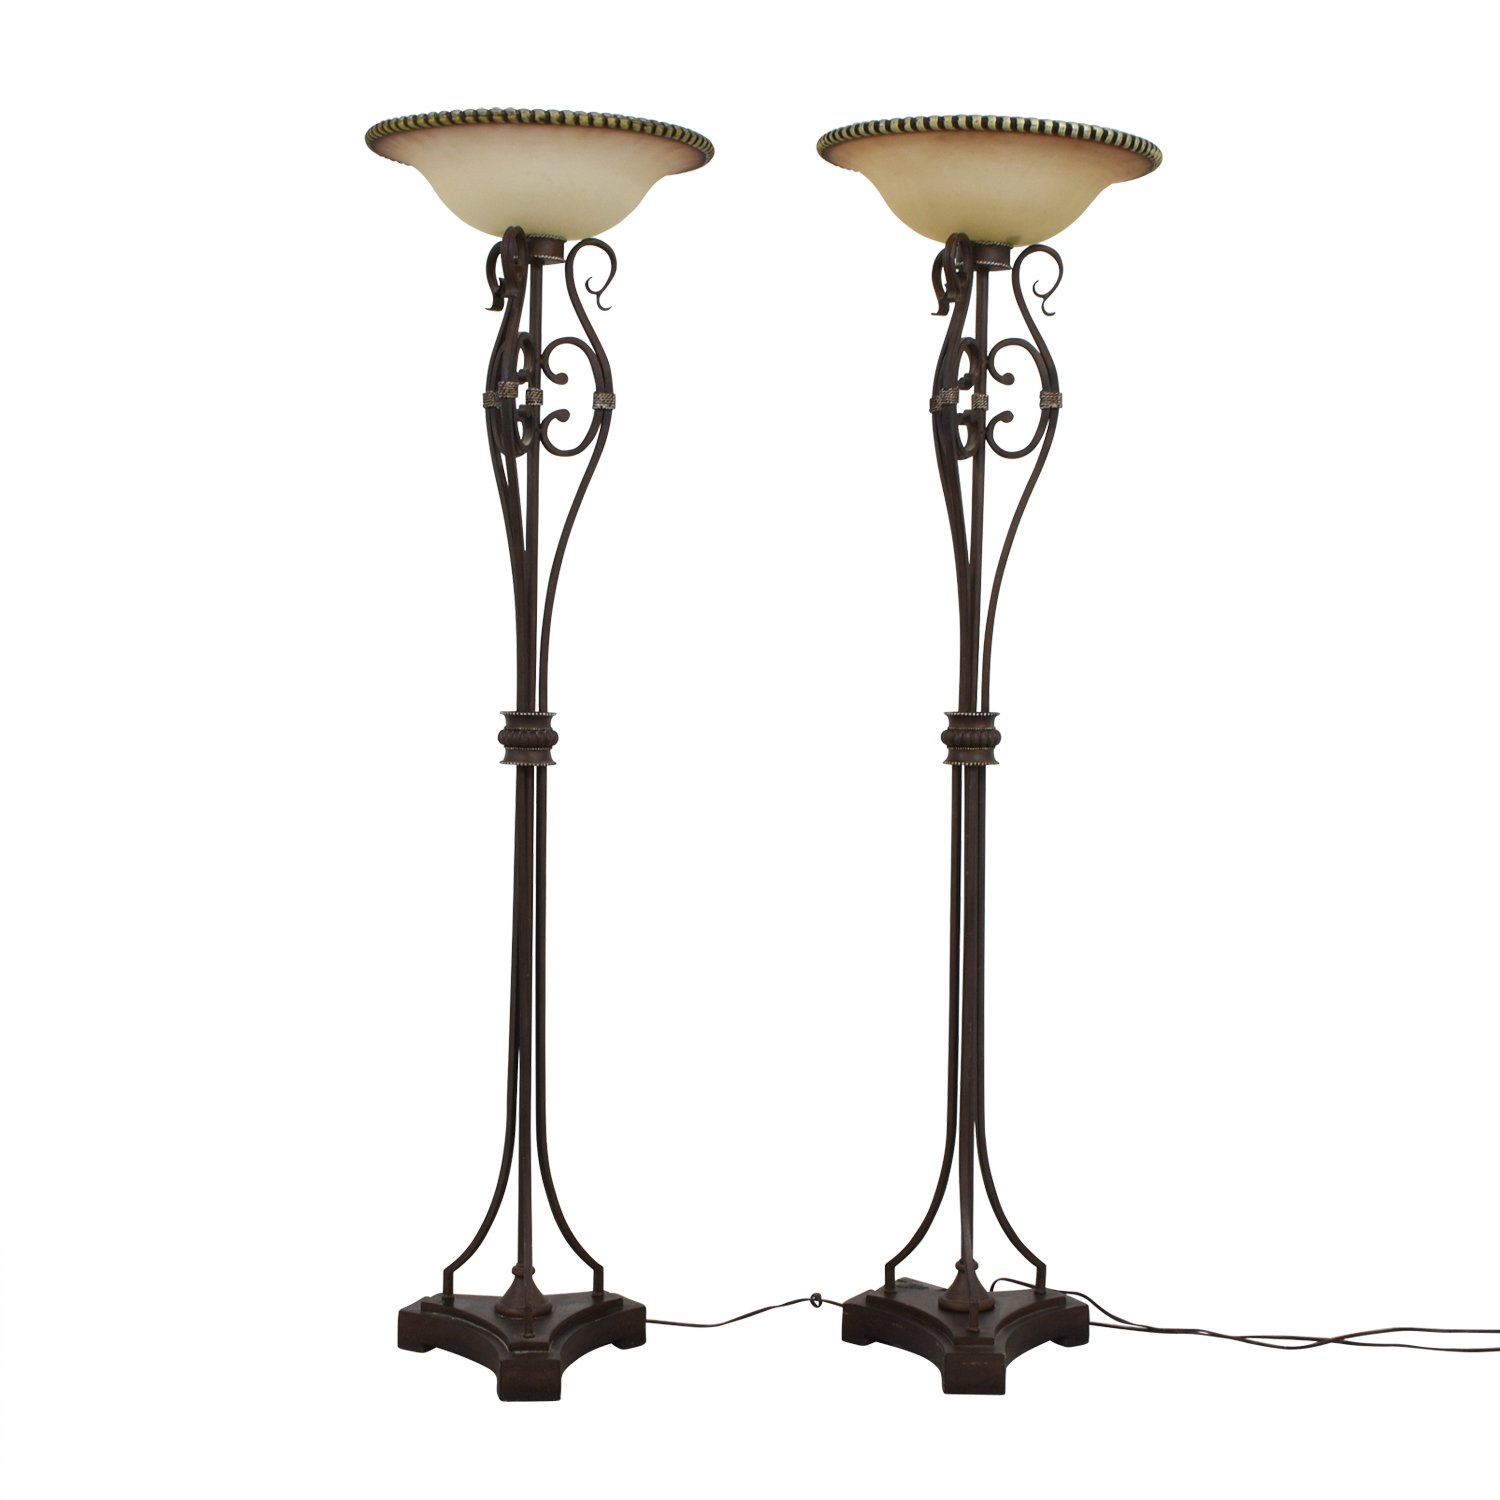 Uttermost Uttermost Metal and Glass Floor Lamps nyc